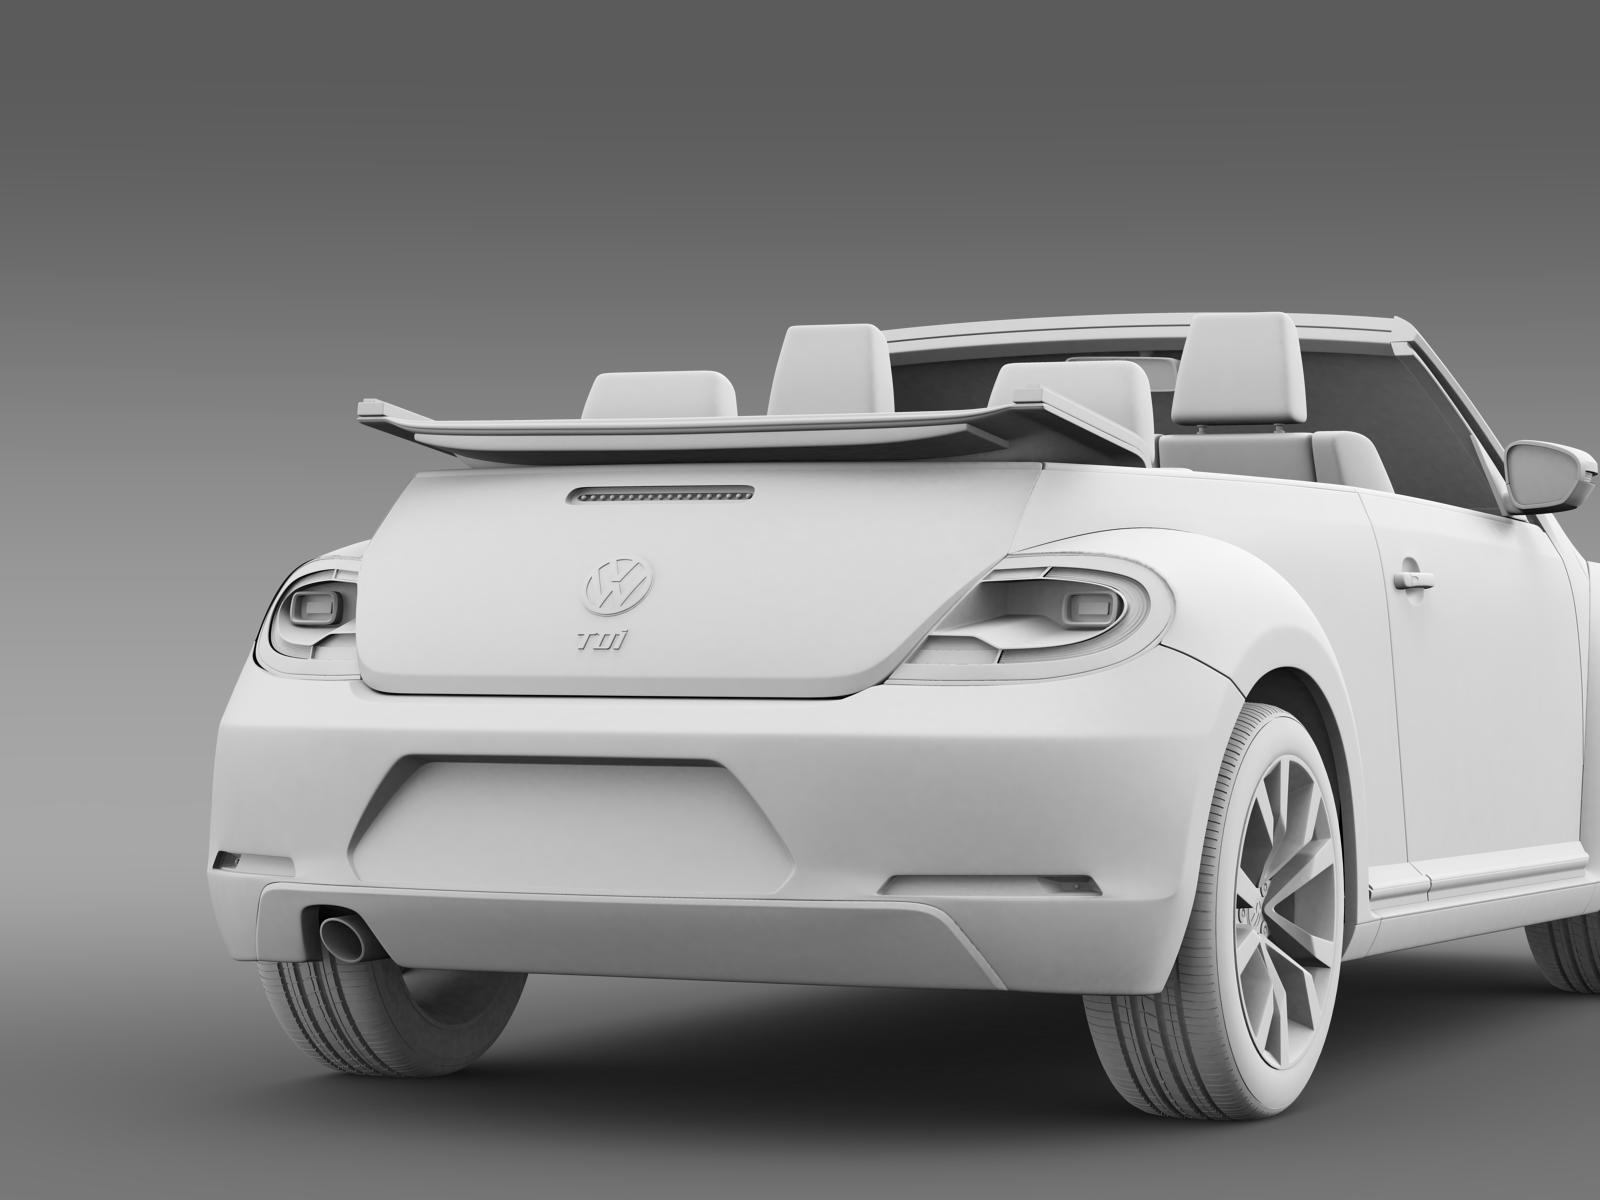 vw beetle tdi cabrio 2014 3d model. Black Bedroom Furniture Sets. Home Design Ideas